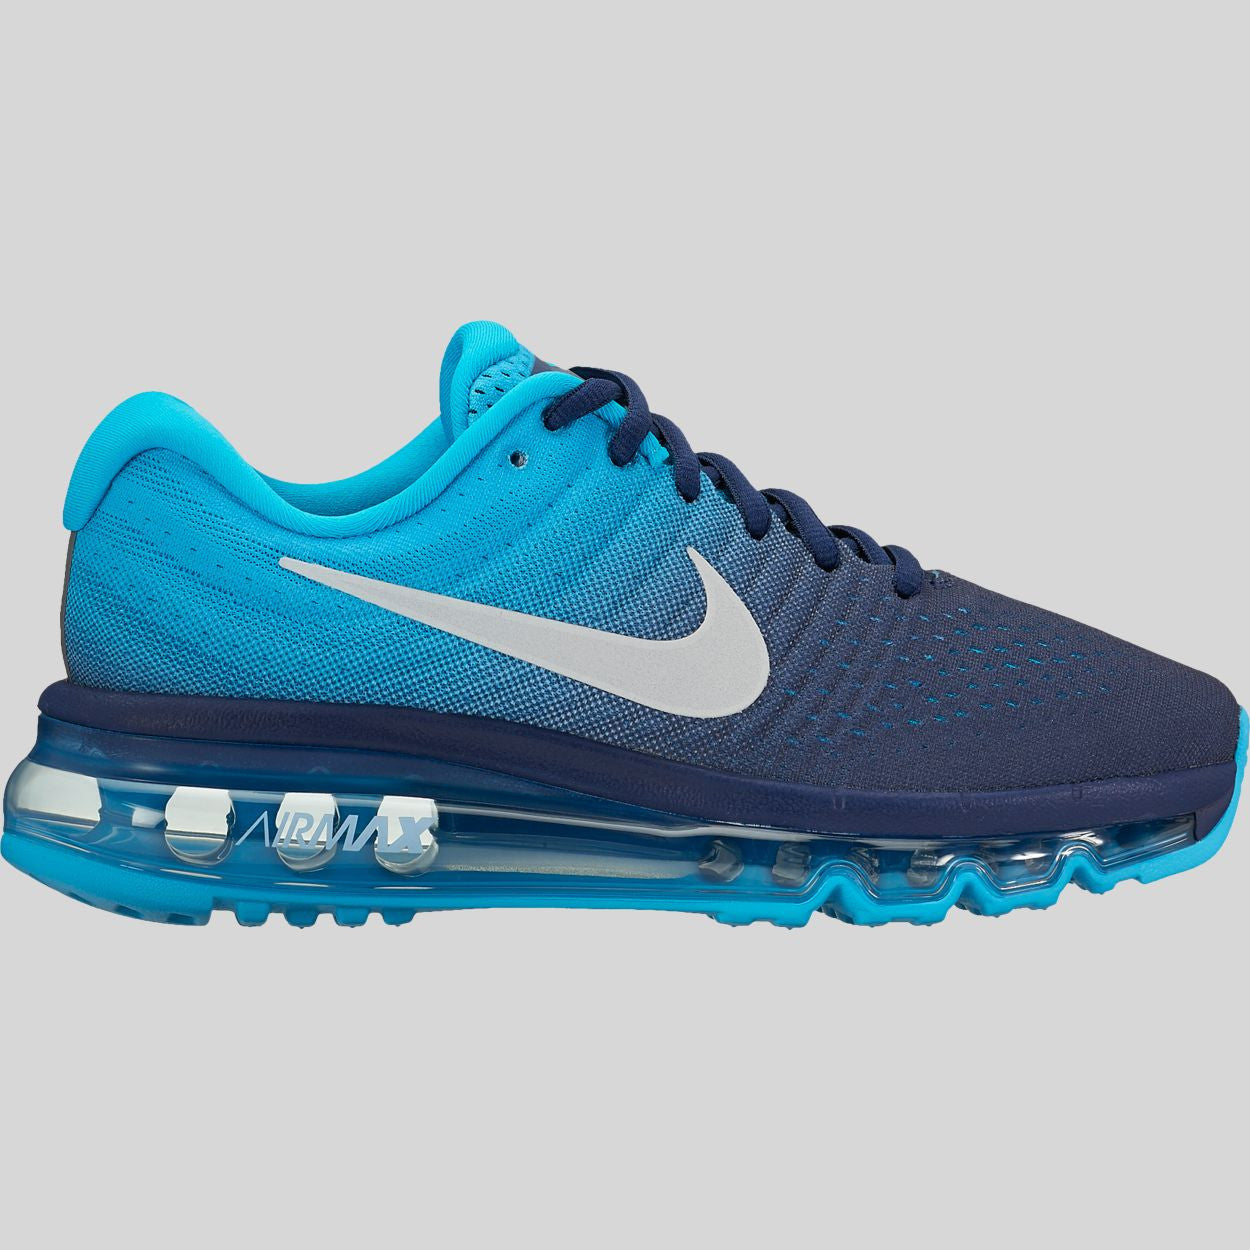 Nike Air Max Blanco 2017 Gs Binary Azul Blanco Max Azul Cloro 851622 401 e781ad